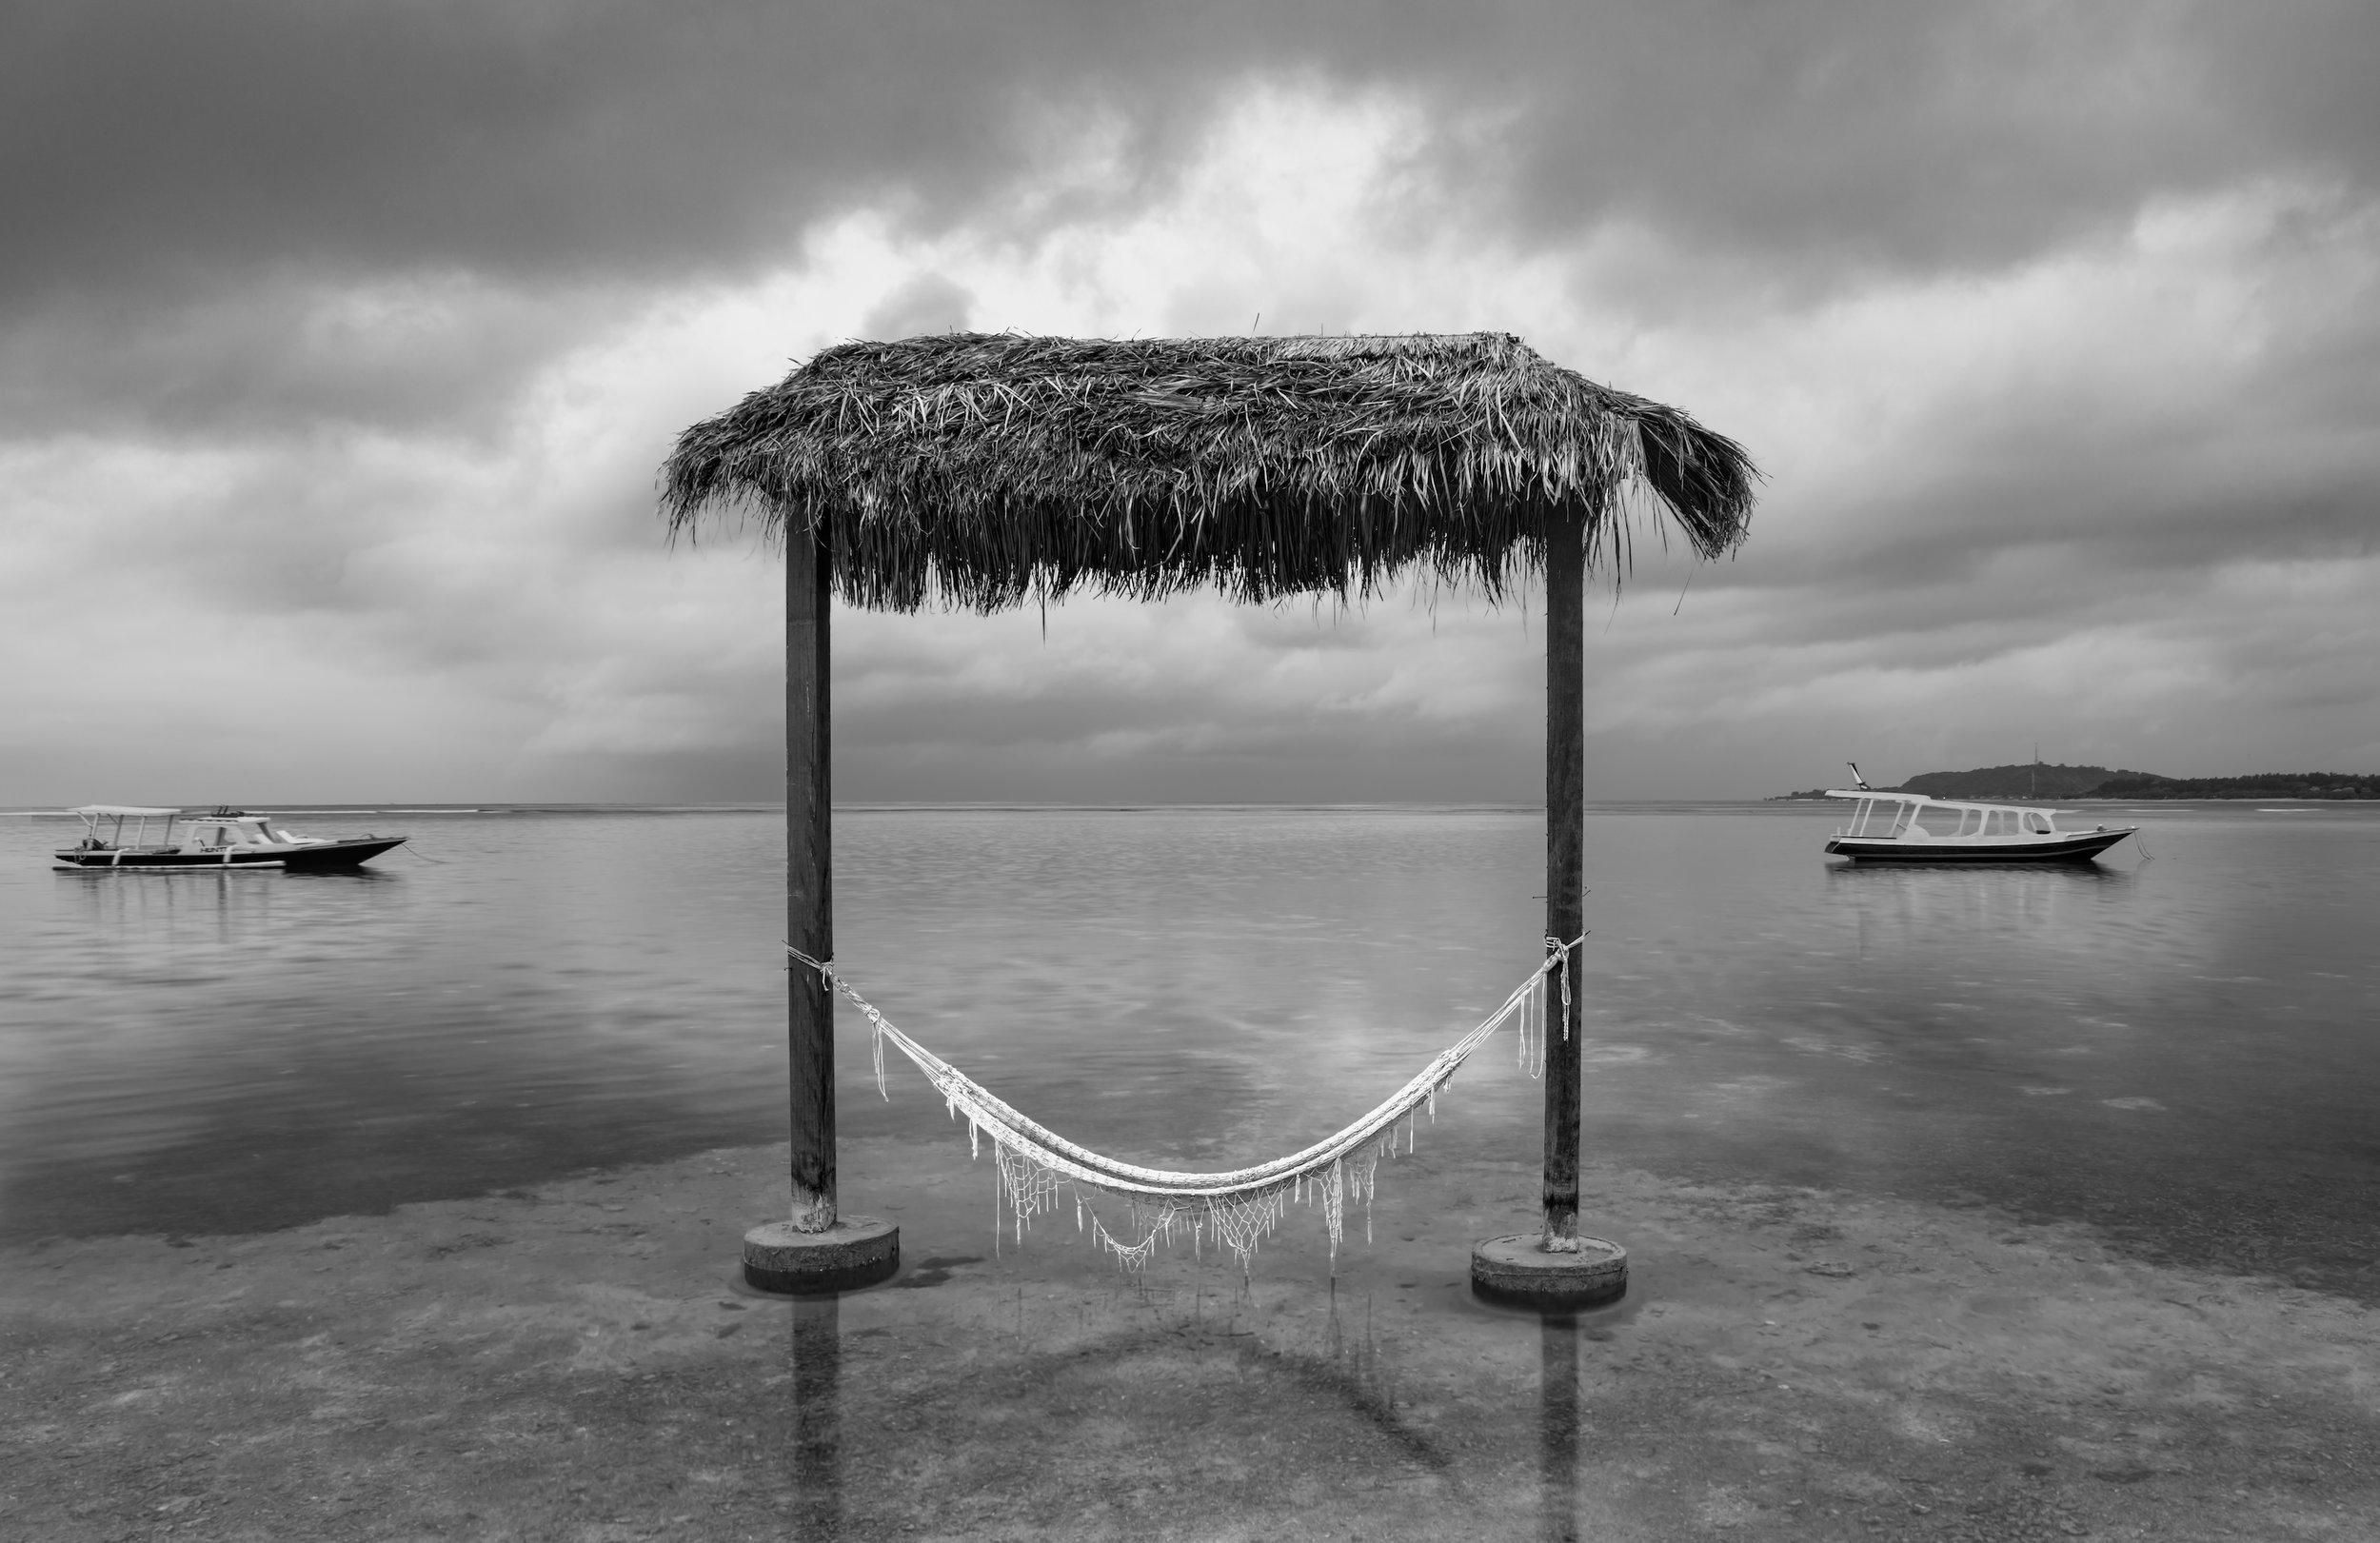 Black and white photograph from Gili Air, Bali, Indonesia. A Hammock hangs above the ocean shore on a cloudy day. Two boats float in the background.